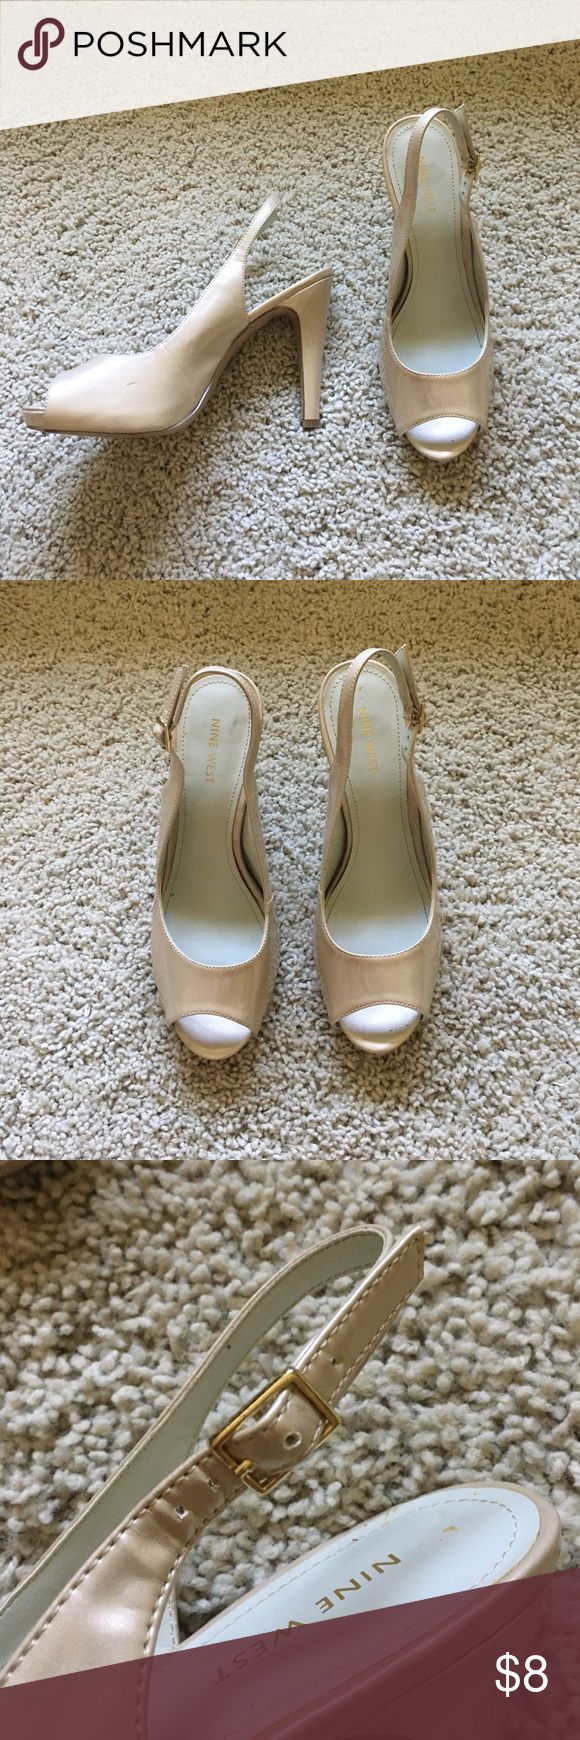 Nine West Champagne Slingback Heels Nine West champagne colored slingback heels. About 4 inches. They do have a drew scuffs and marks, but nothing is extremely noticeable, except for one of them. The straps are a little flimsy, but only when you're not wearing them. There are also some marks where your feet go, but no foot stains. Nine West Shoes Heels